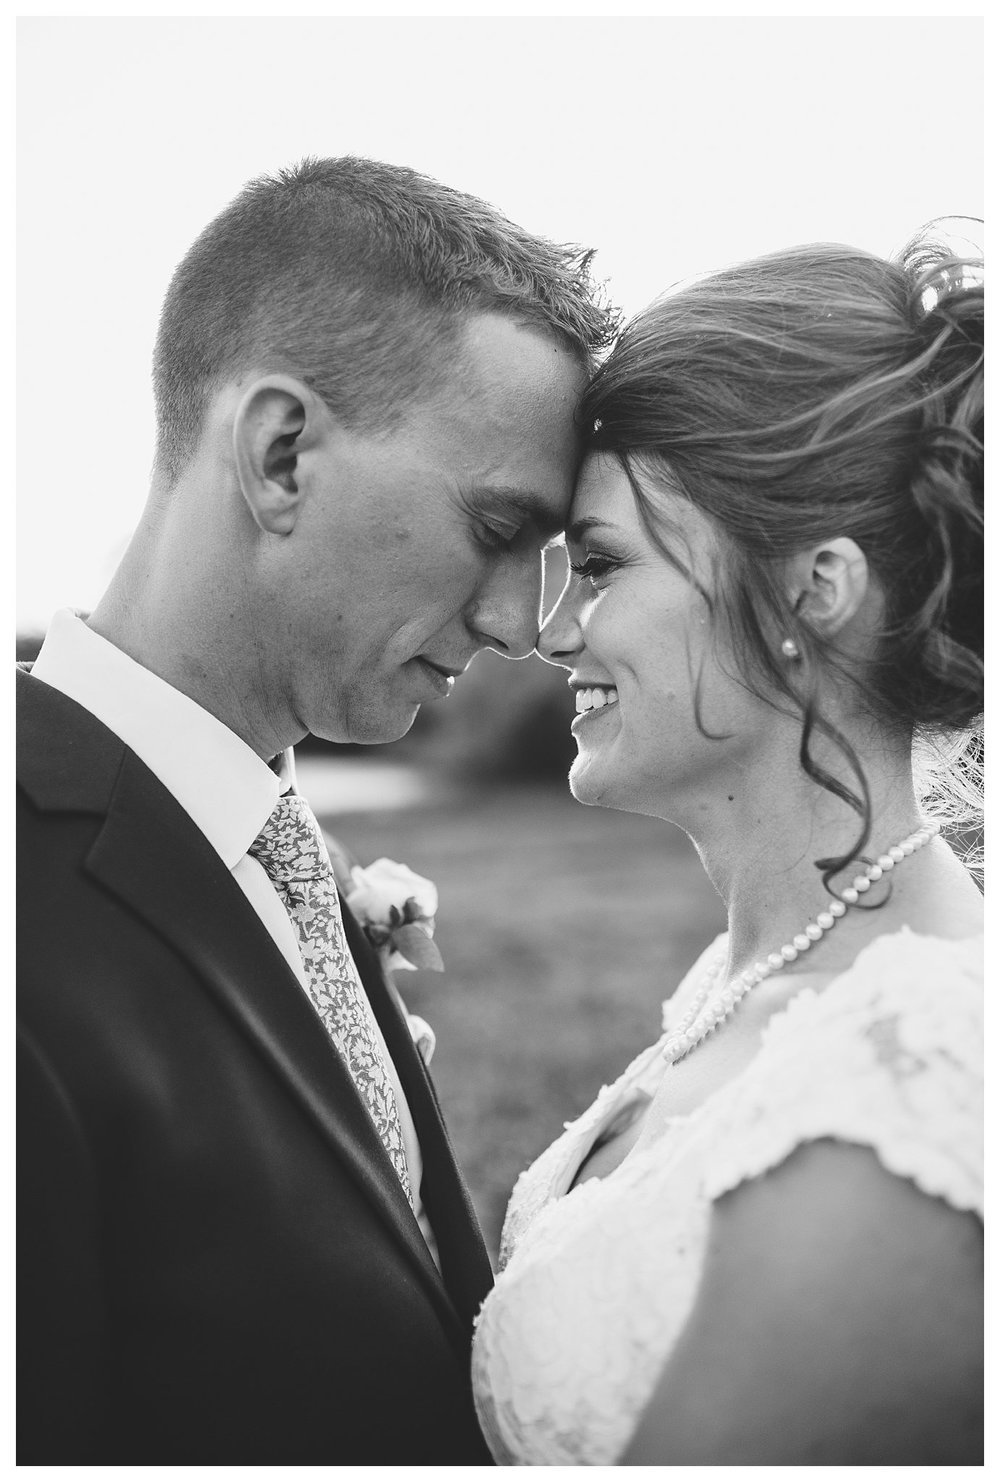 richwood-on-the-river-everleigh-photography-roby-and-tabitha-foree-wedding-86